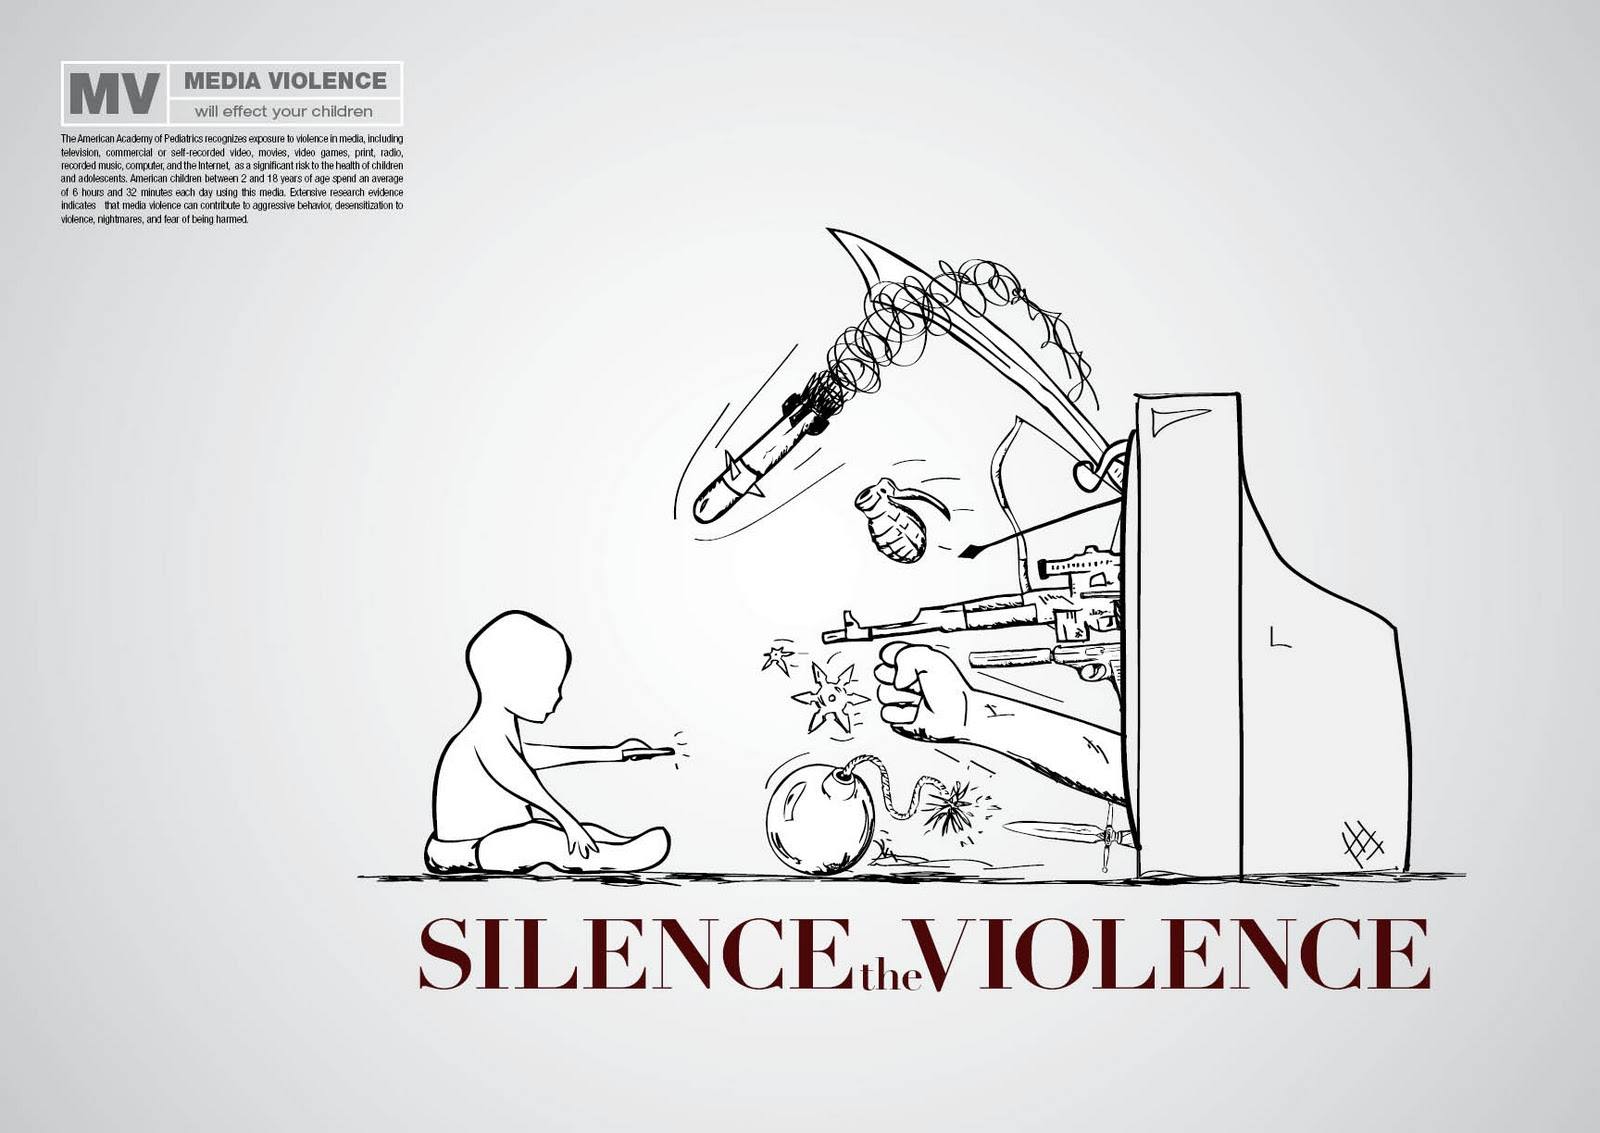 the effects of violence in media on children Sex and violence in the media media is everywhere but there are ways to help protect your children from the harmful effects: monitor what your child is watching set limits on their exposure to tv, radio and video games.